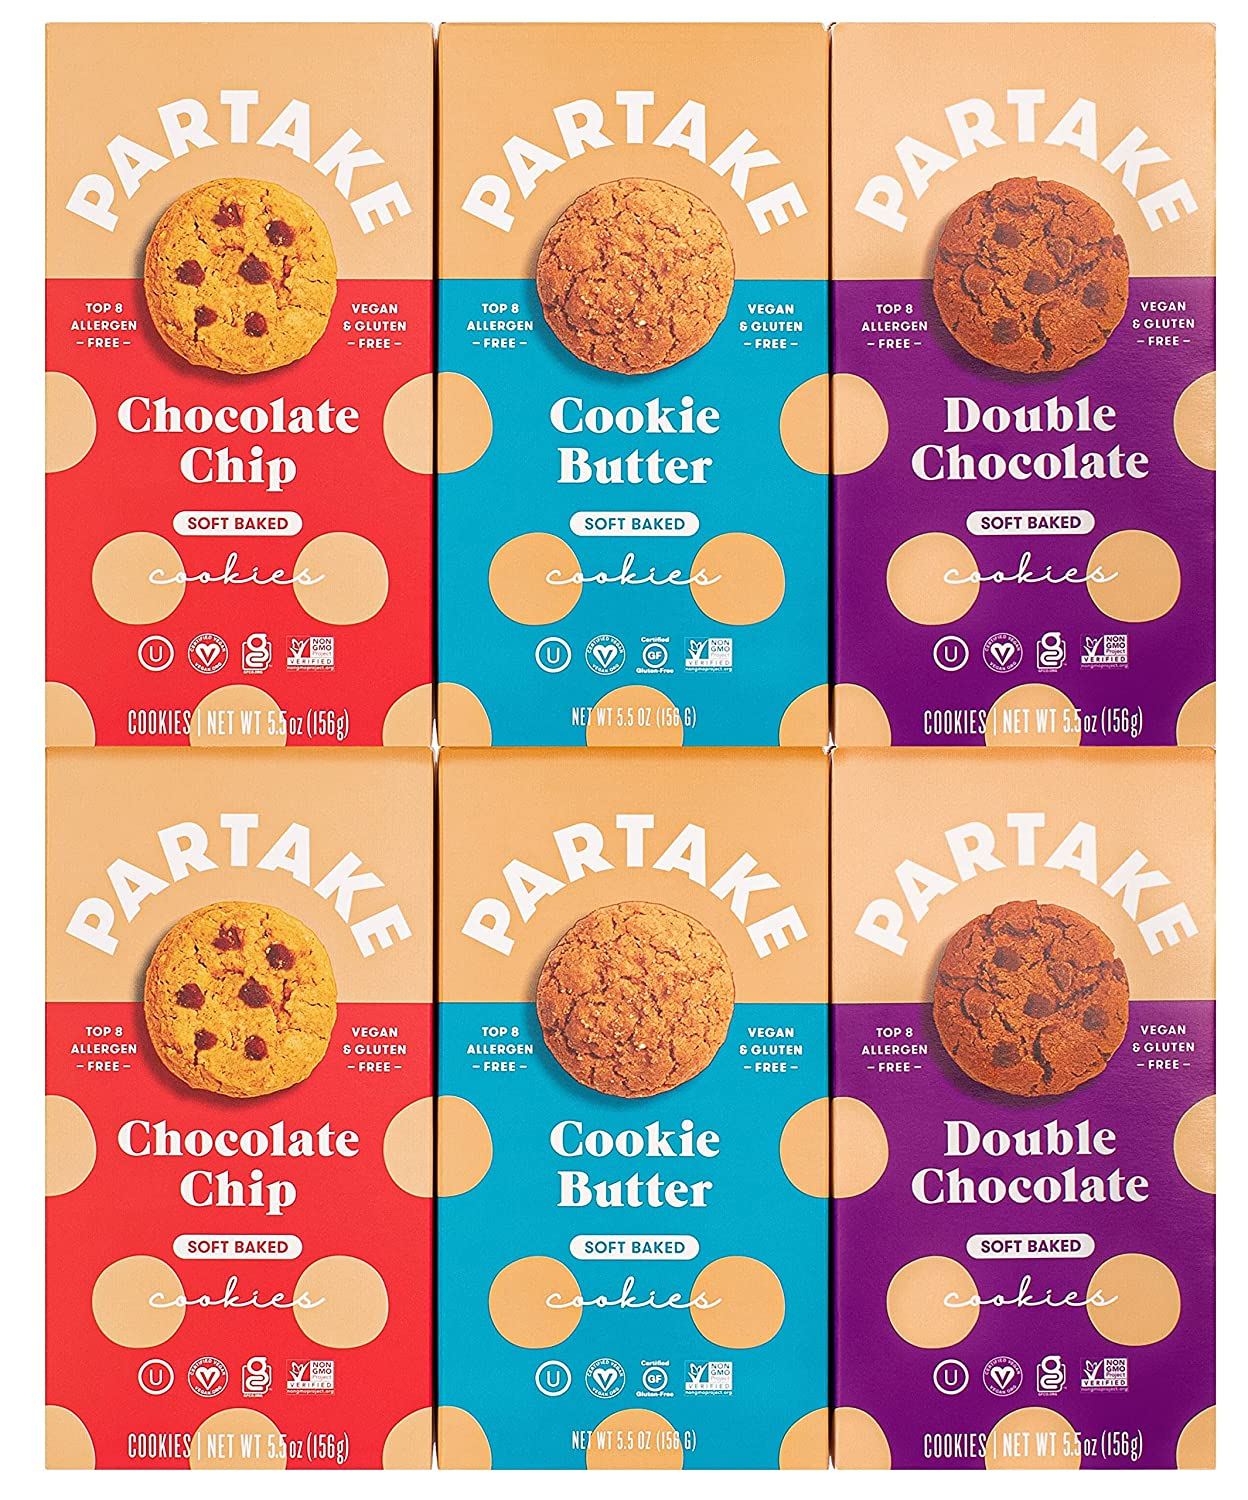 Partake Foods Soft-Baked Vegan Cookies – 6 Box Variety Pack Vegan & Gluten Free Dairy Free, Nut Free, Egg Free, Wheat Free, Soy Free, Fish Free   Allergy Friendly Cookies Safe School Snack for Kids